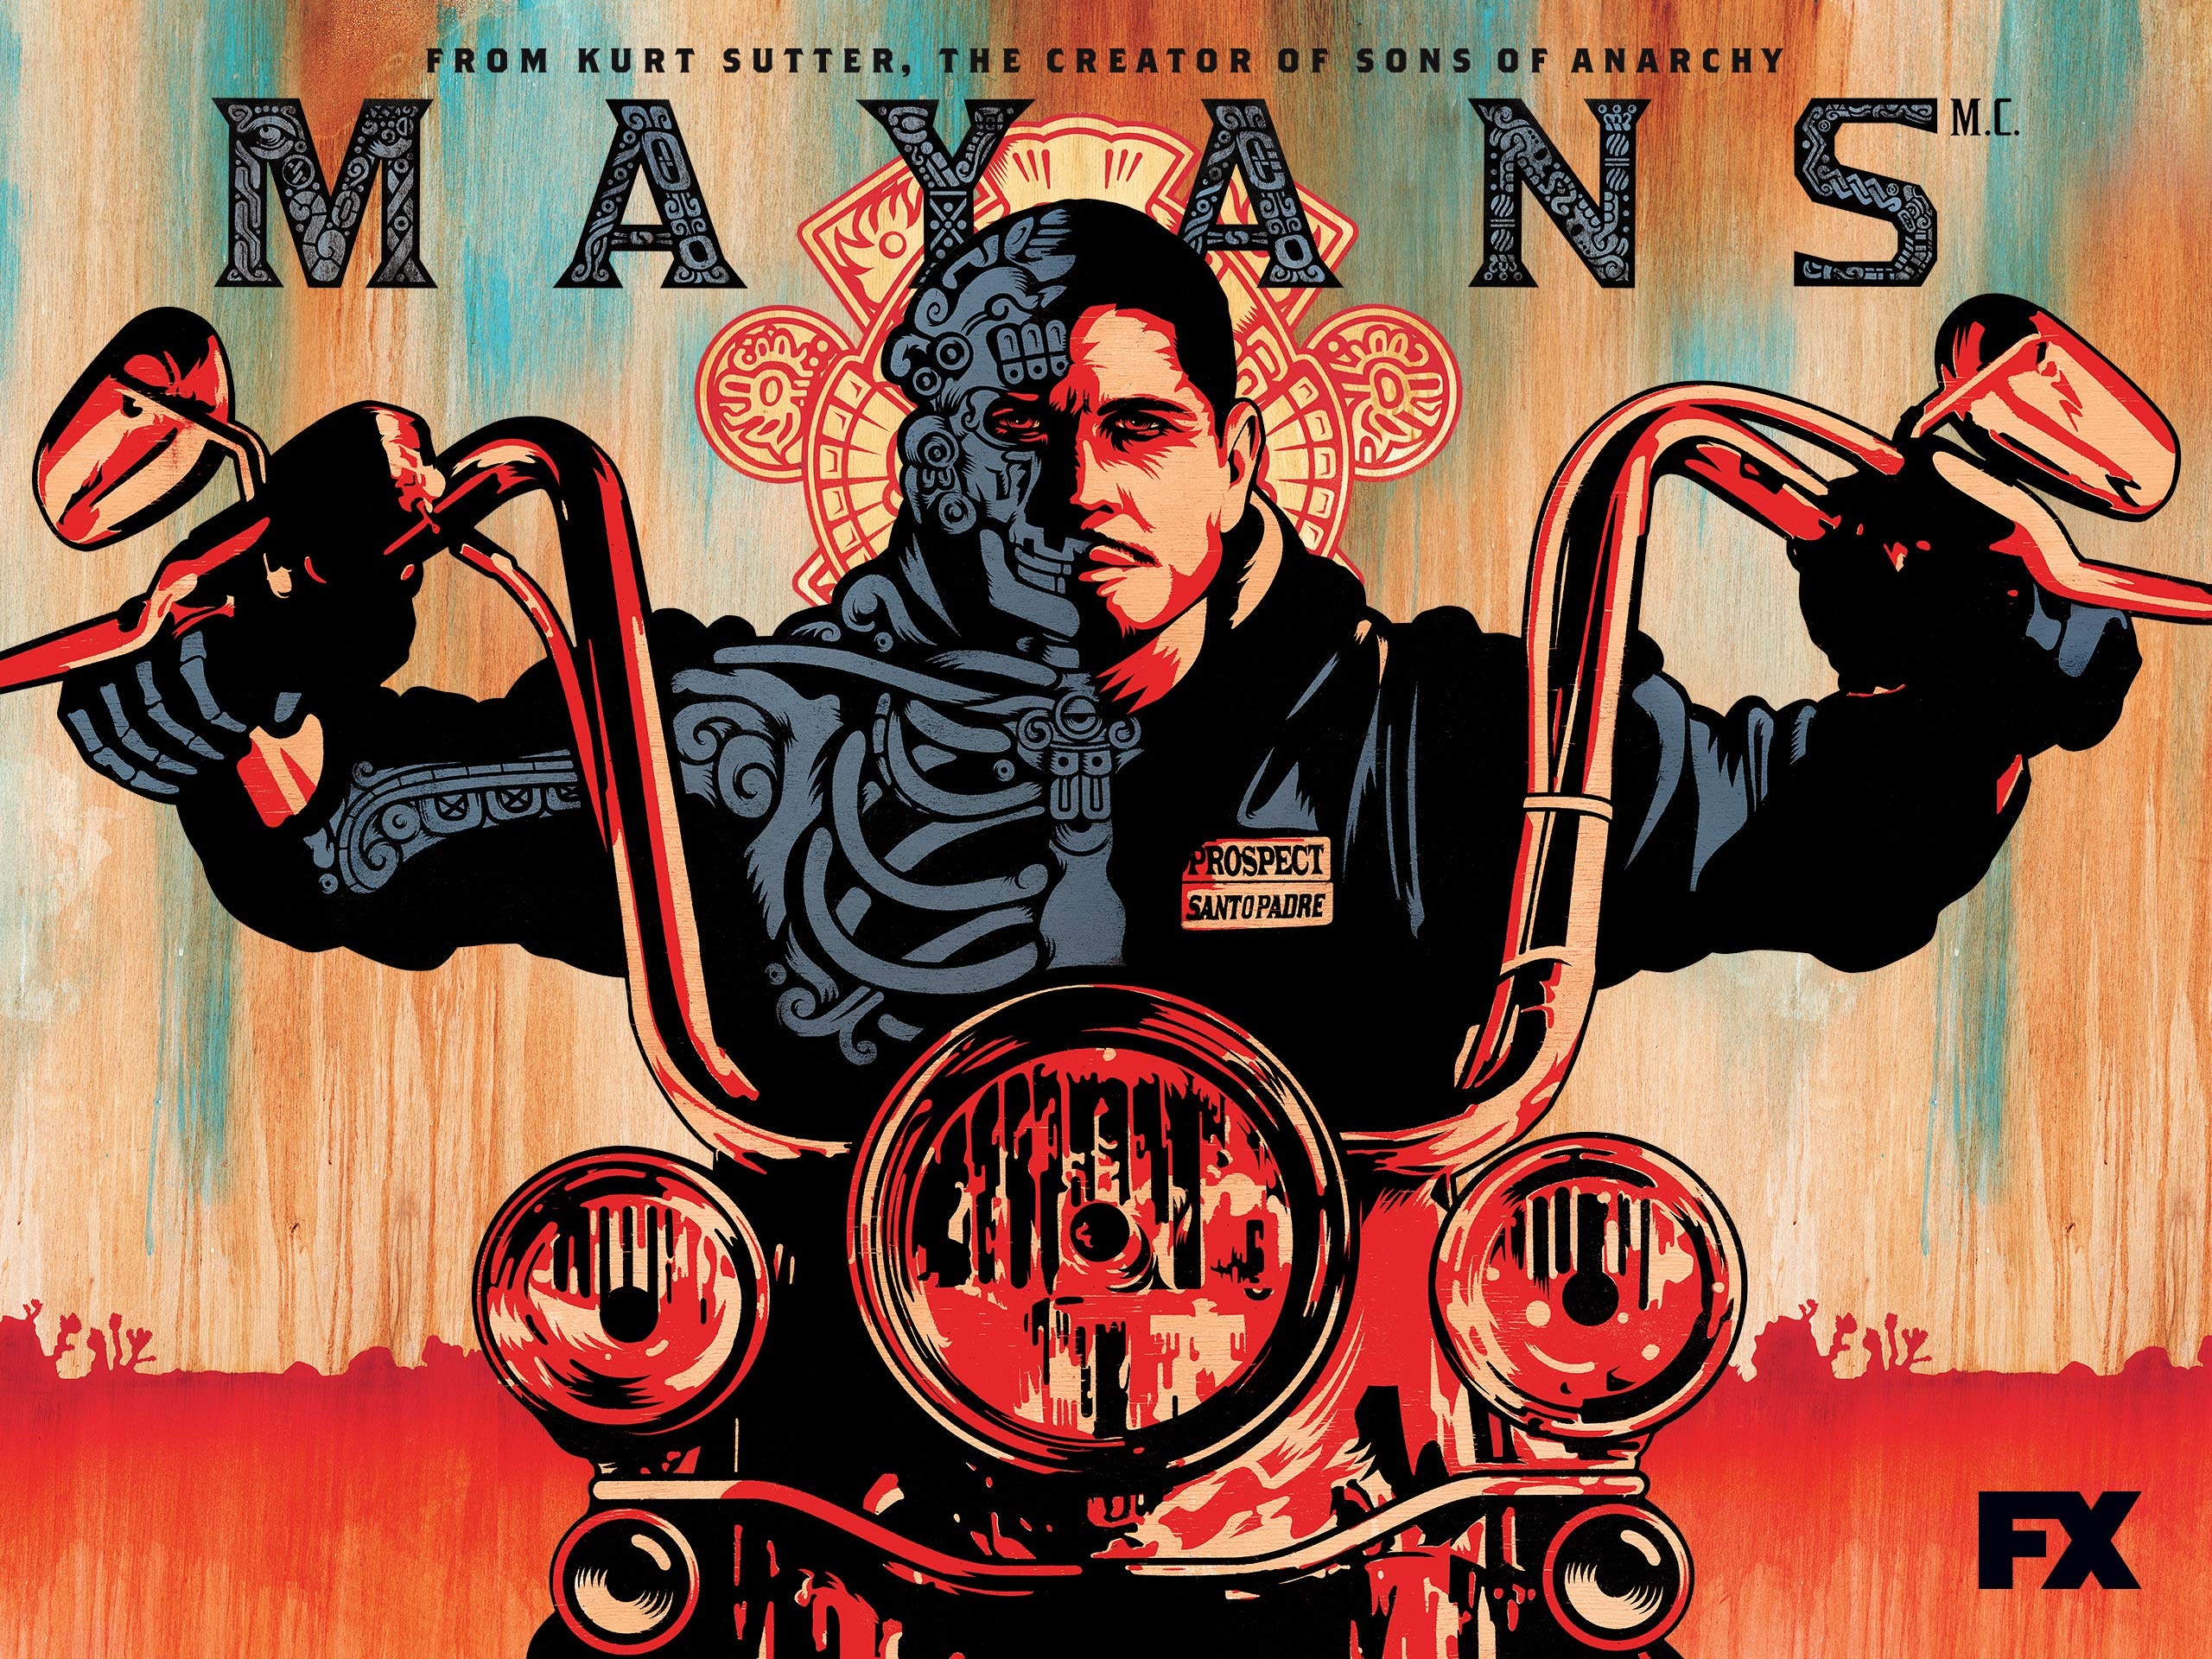 sons of anarchy season 1 episode 1 torrent